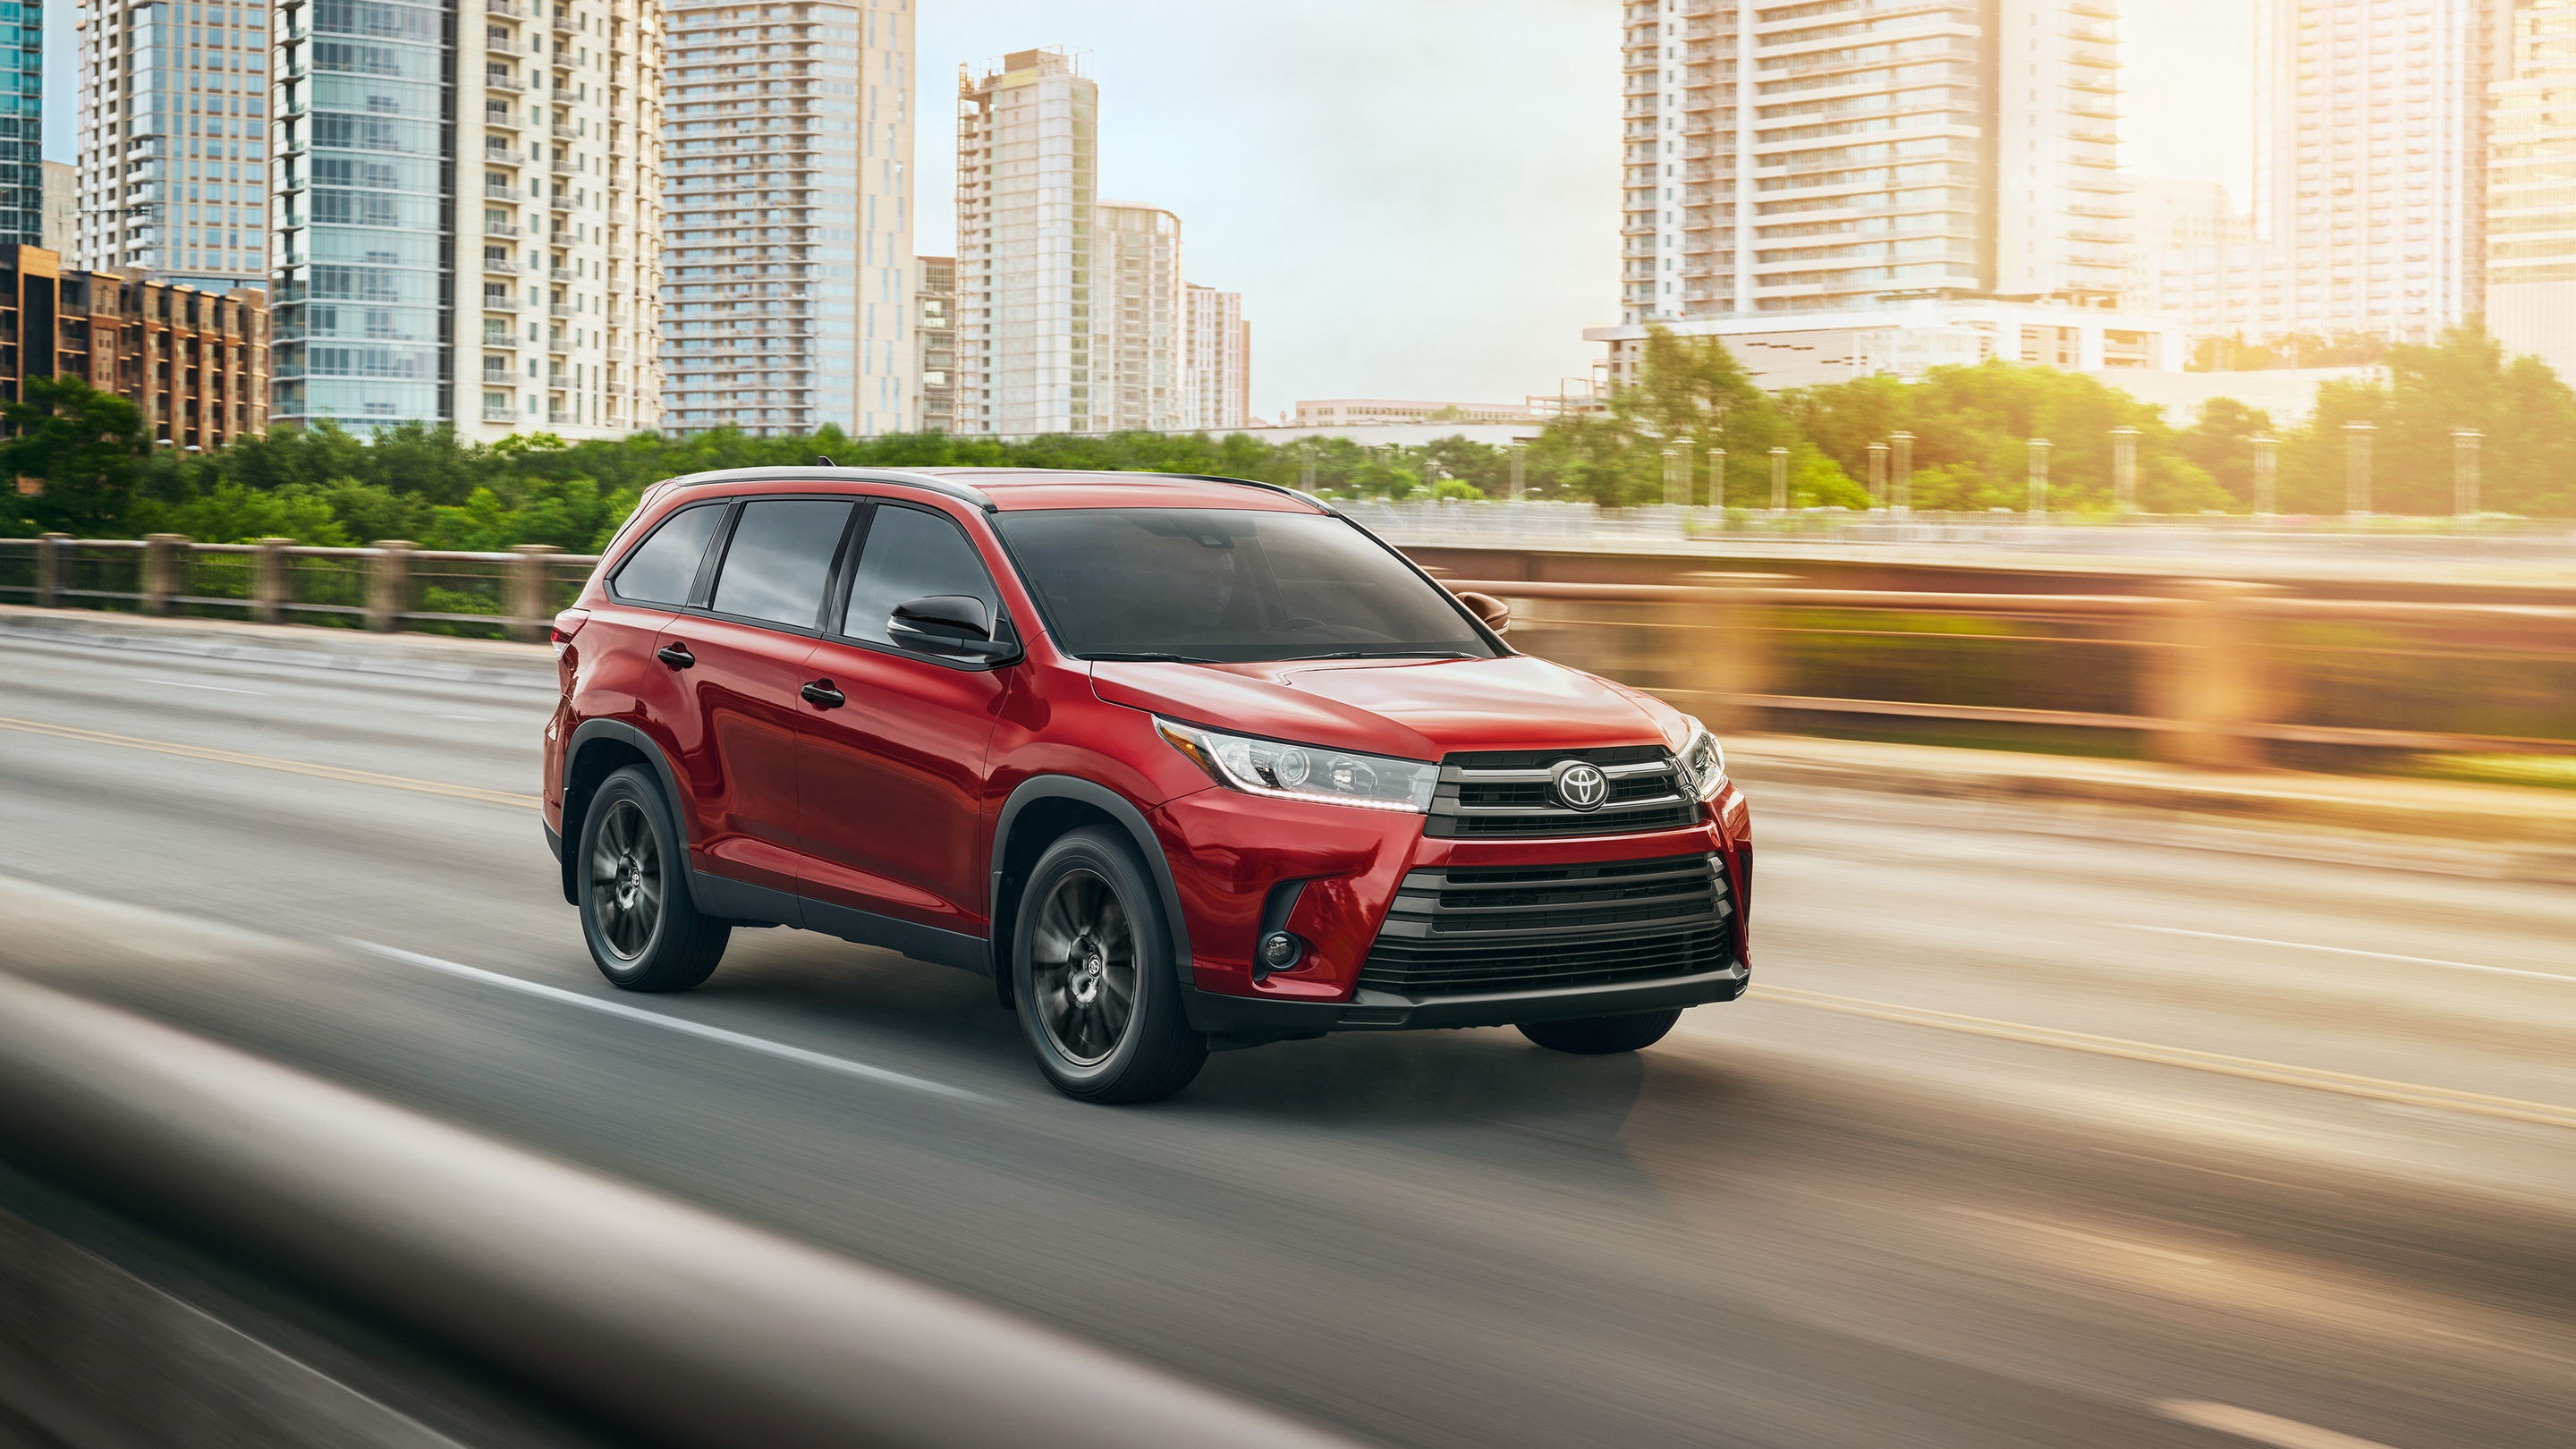 2019 Toyota Highlander Performance in Jacksonville, FL